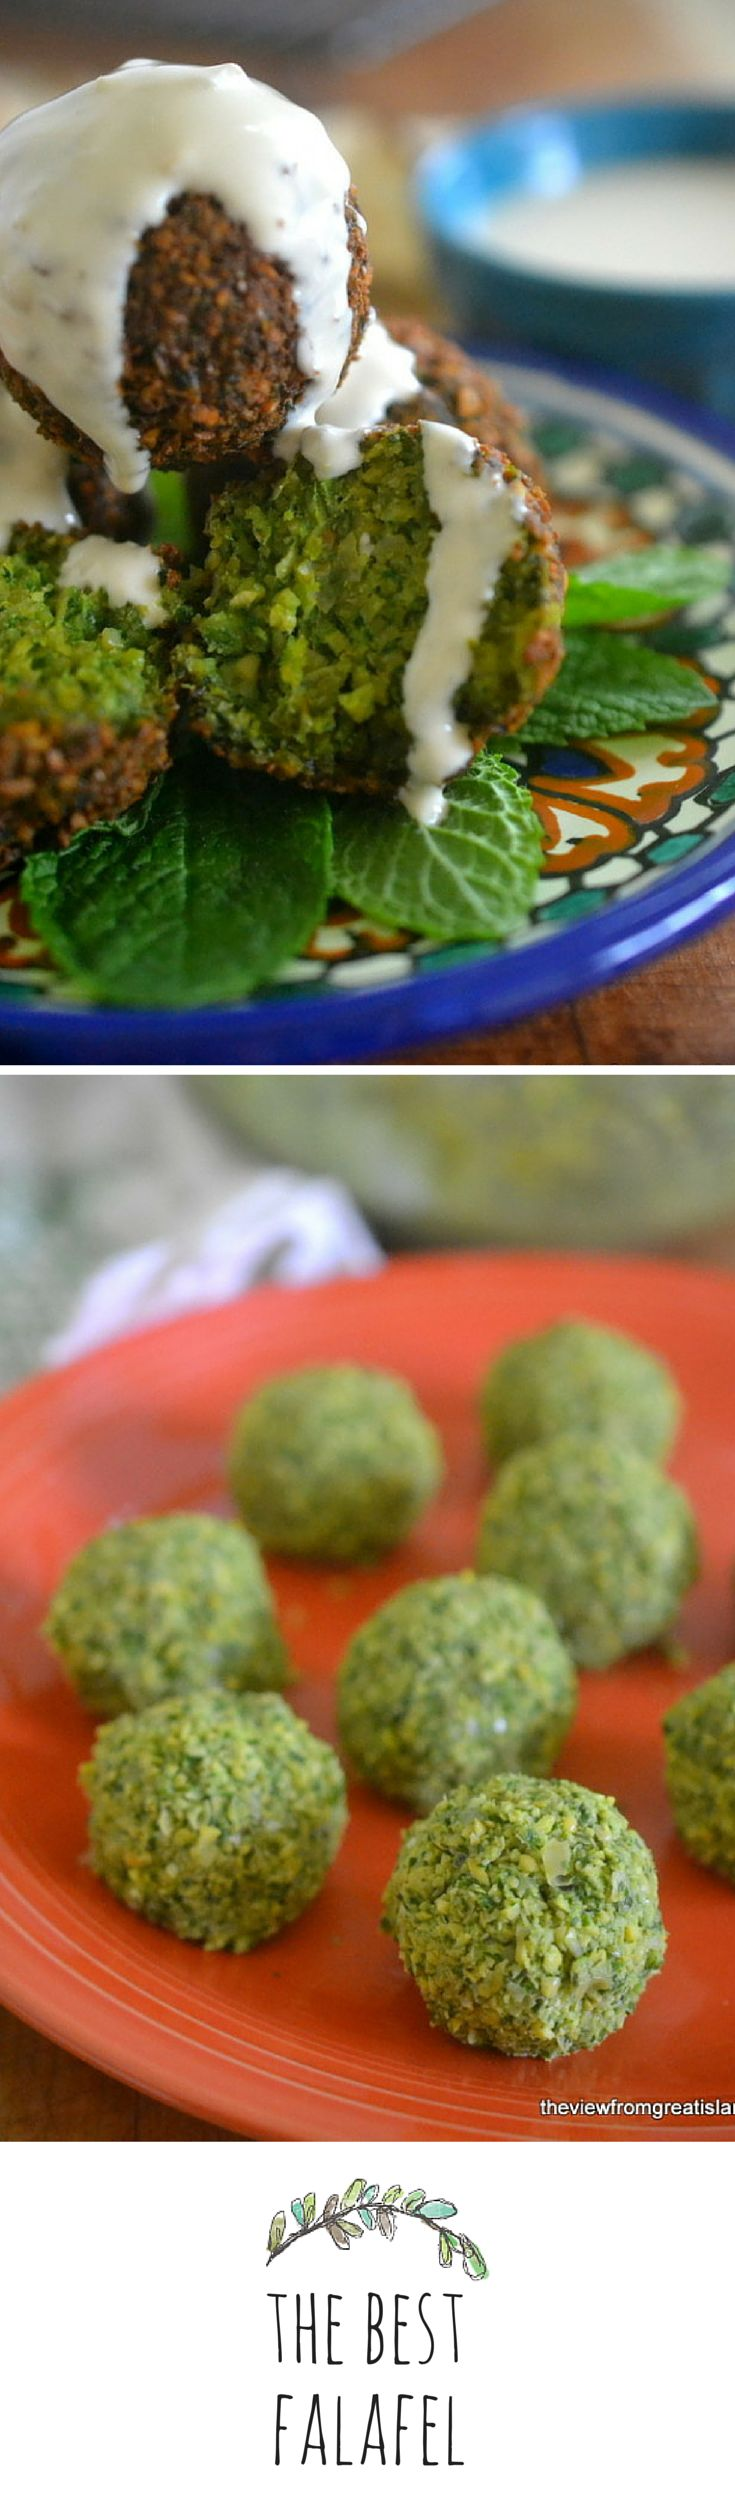 This falafel is a gorgeous emerald green on the inside!